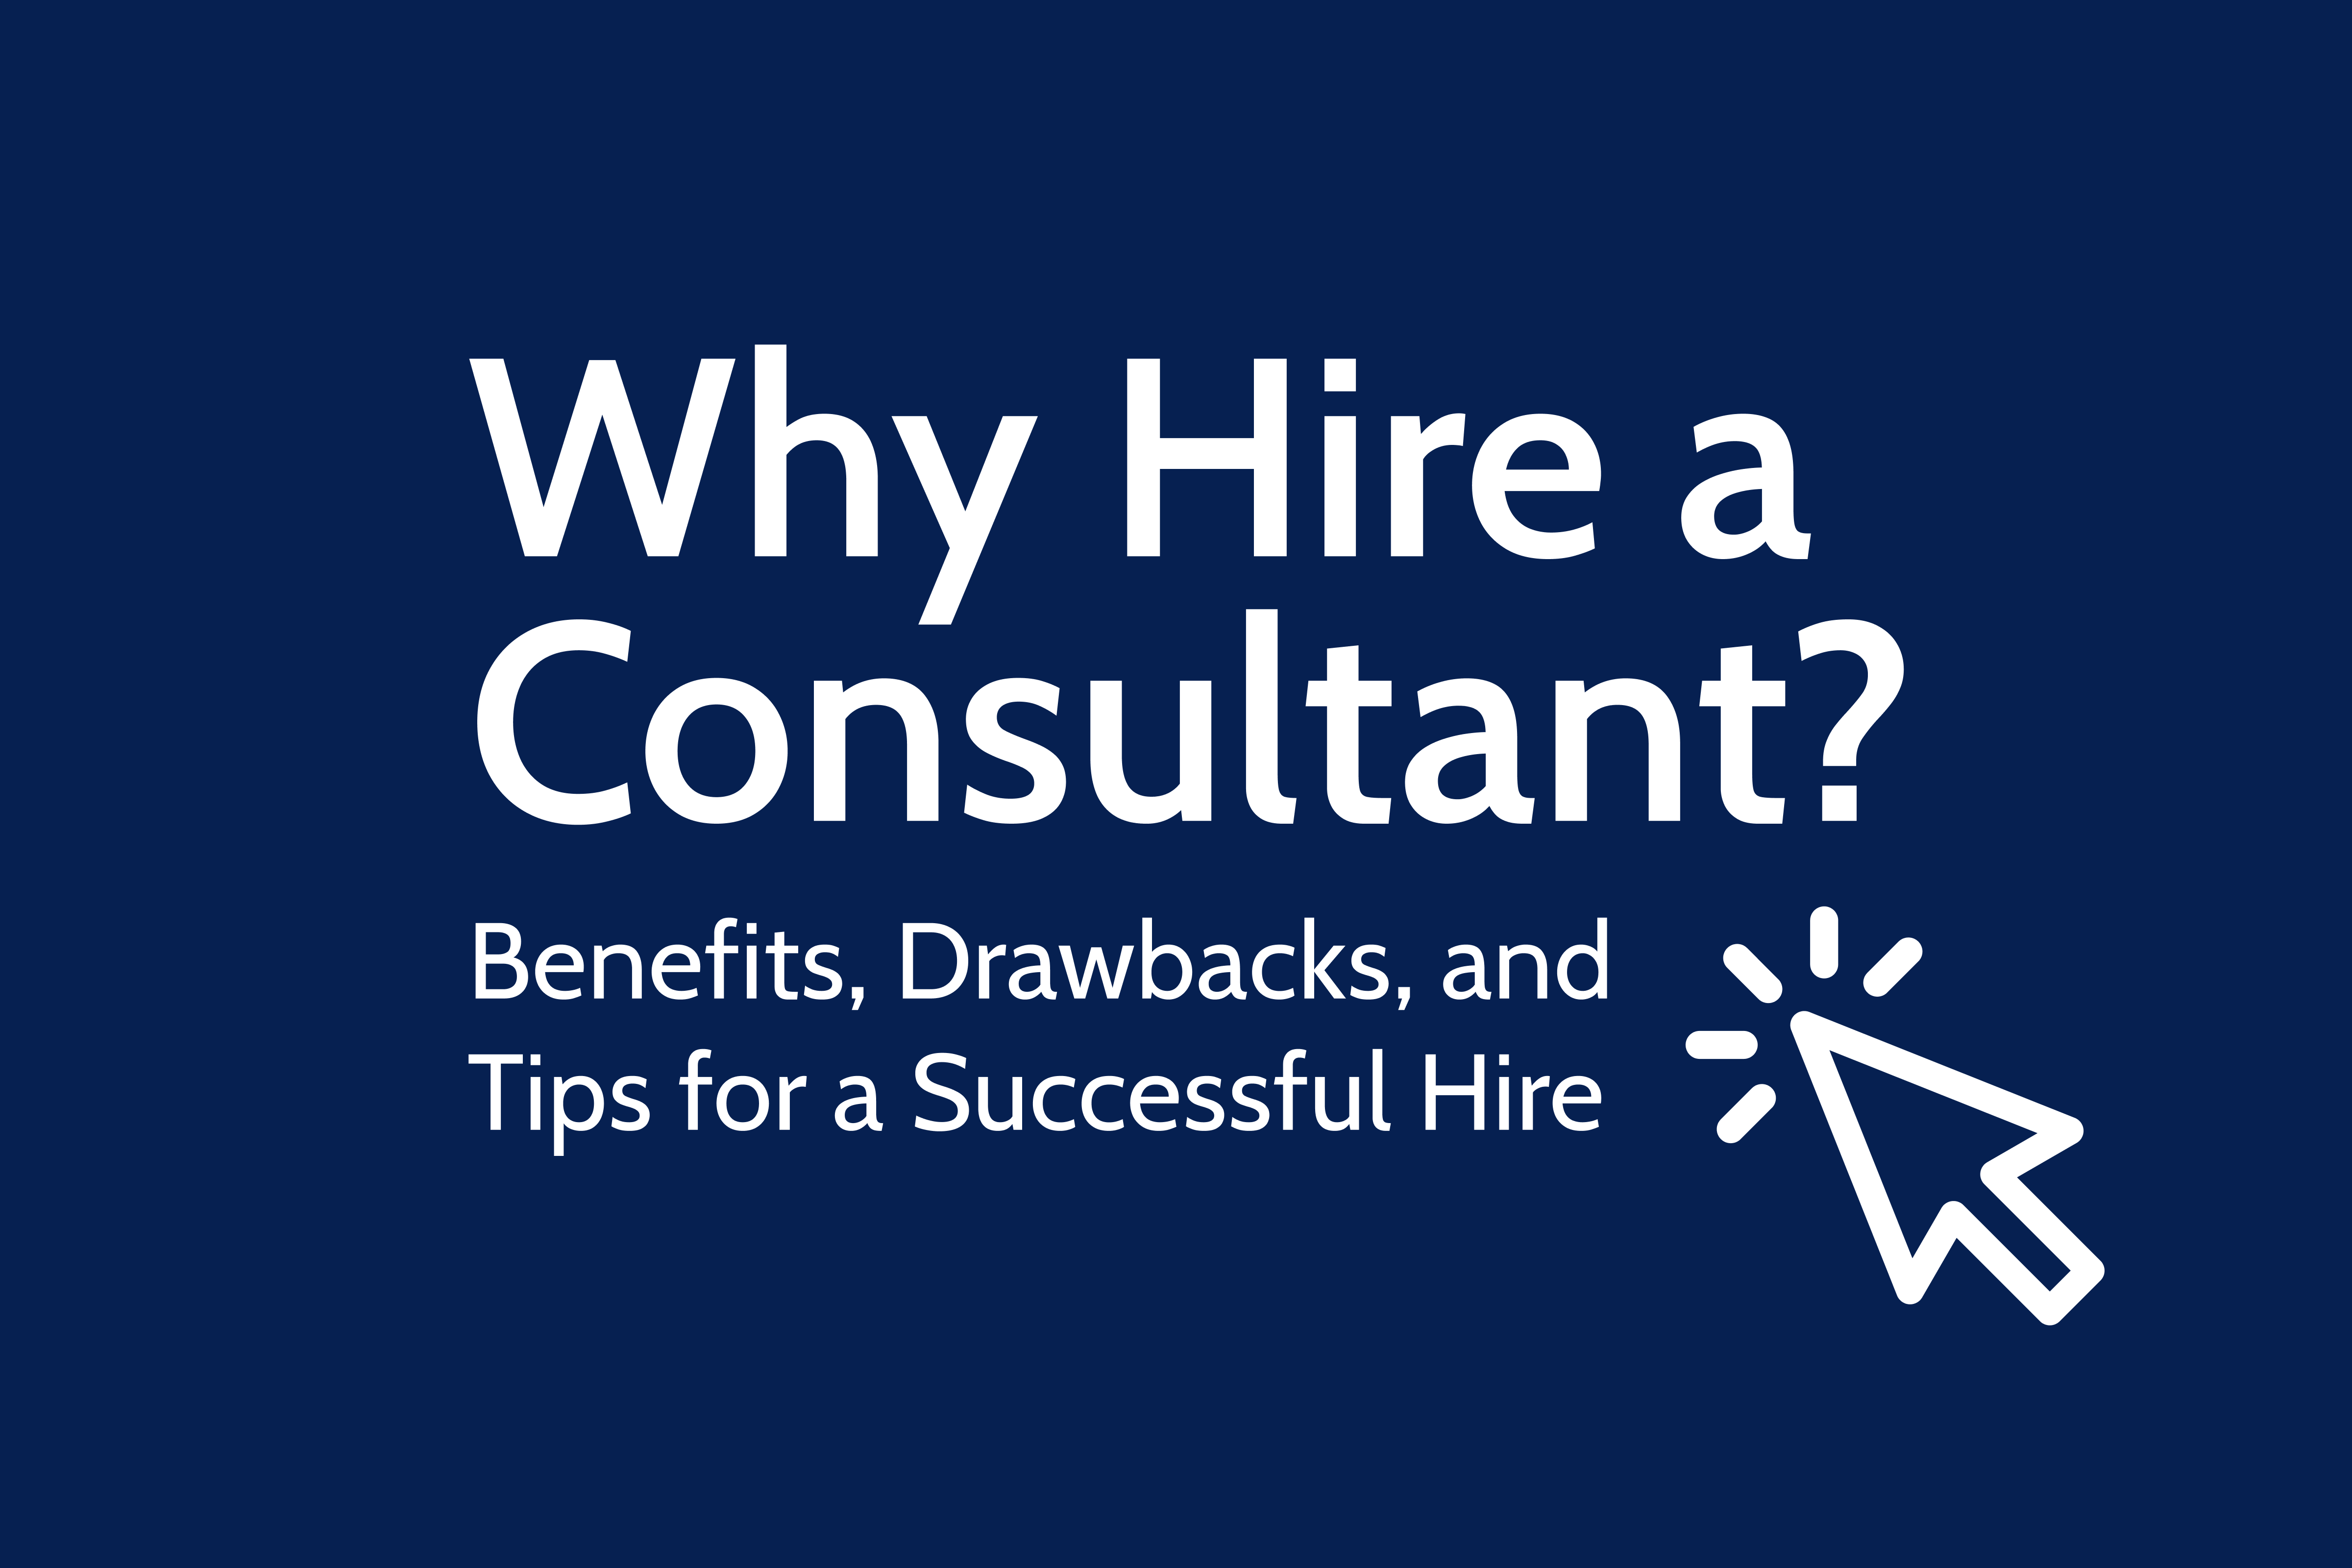 Why Hire a Consultant? Benefits, Drawbacks, and Tips for a Successful Hire